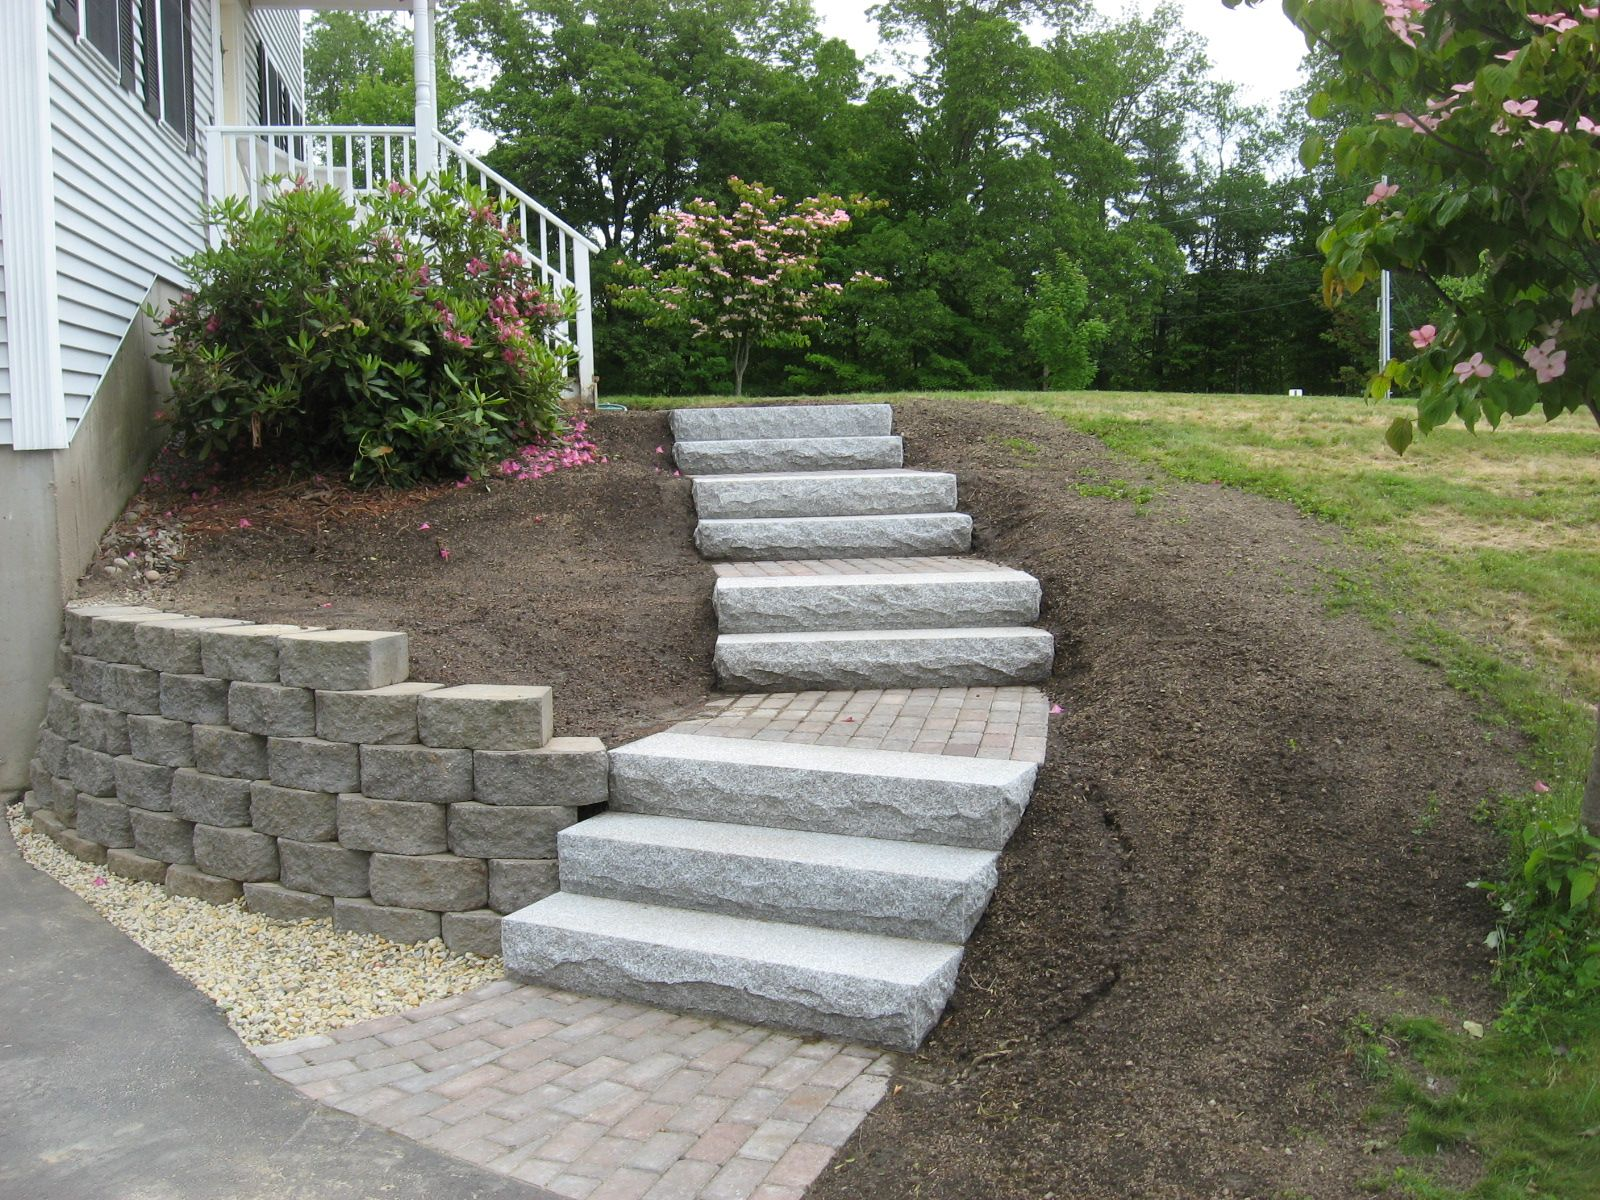 Landscaping Wall Steps : Front yard stone walkways walkway retaining wall granite steps and